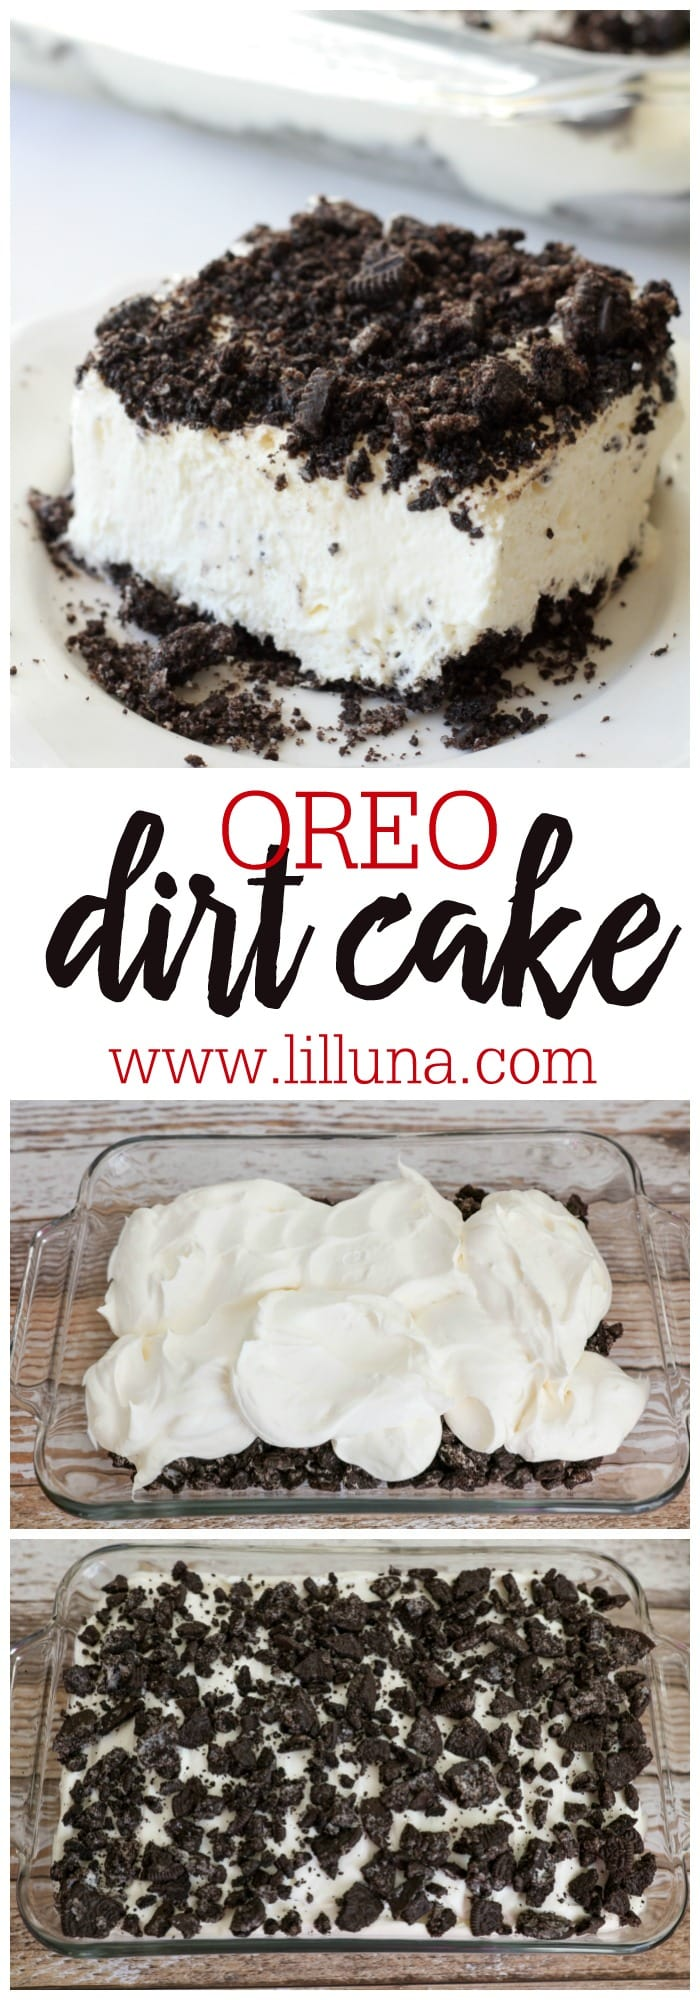 Oreo Dirt Cake recipe Lil Luna